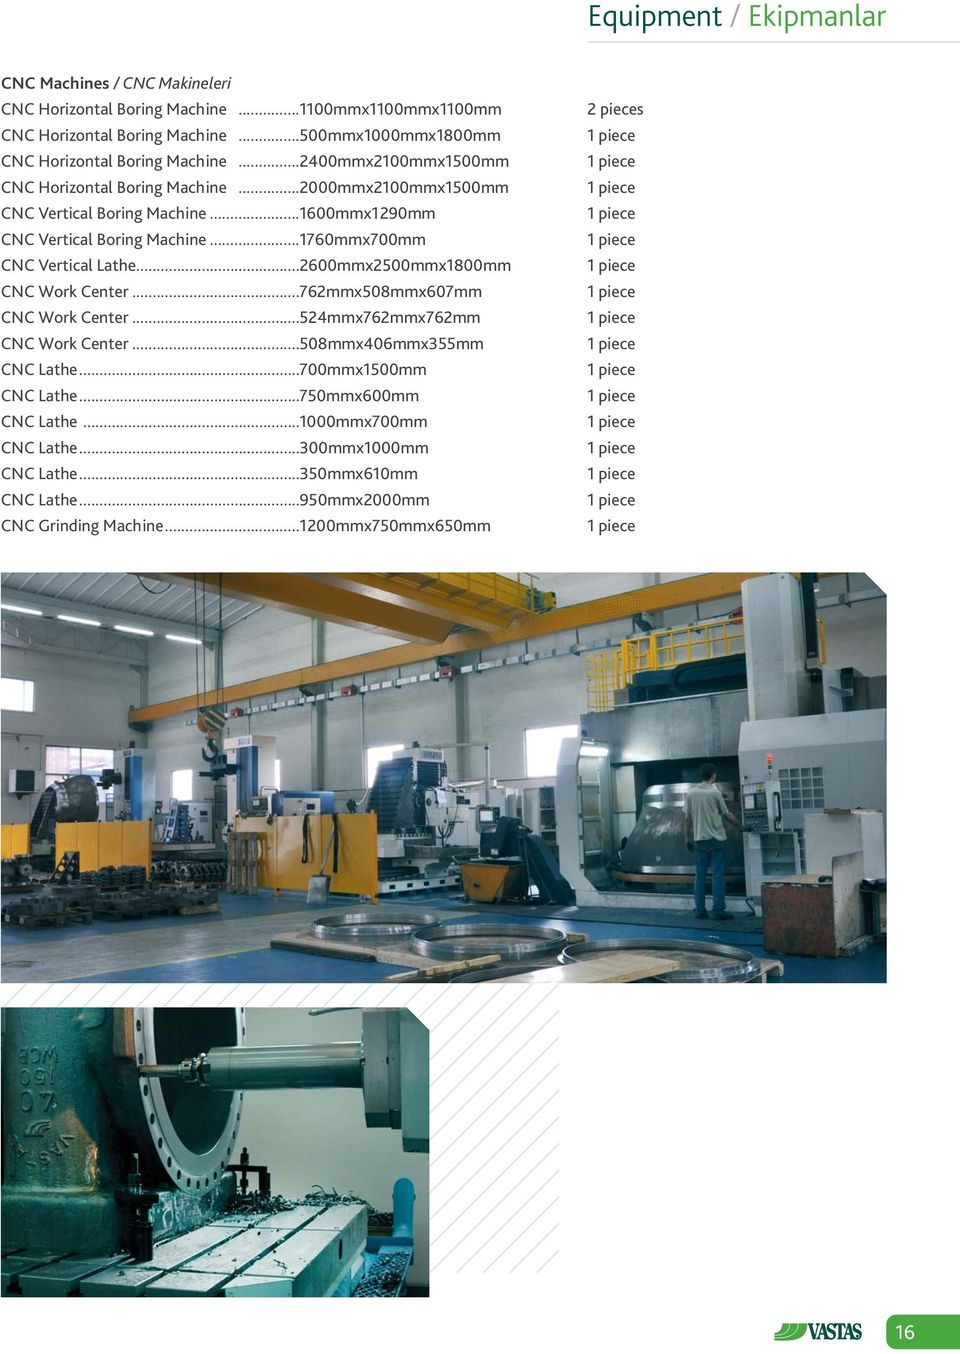 ..1600mmx1290mm CNC Vertical Boring Machine...1760mmx700mm CNC Vertical Lathe...2600mmx2500mmx1800mm CNC Work Center...762mmx508mmx607mm CNC Work Center.